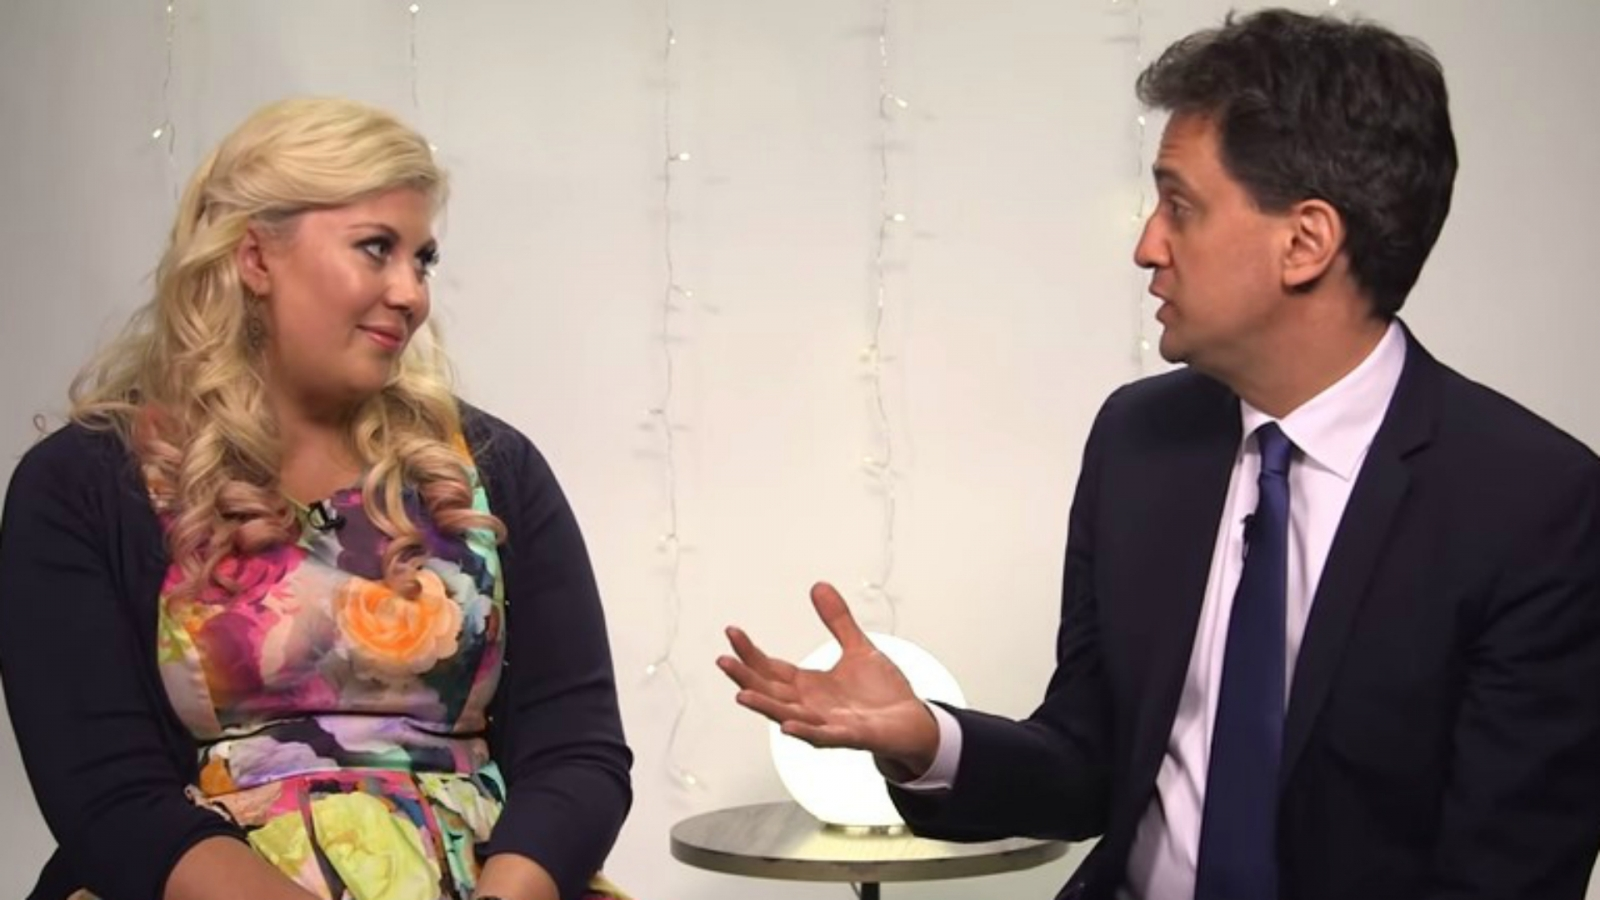 Sprinkle Of Glitter and Ed Miliband